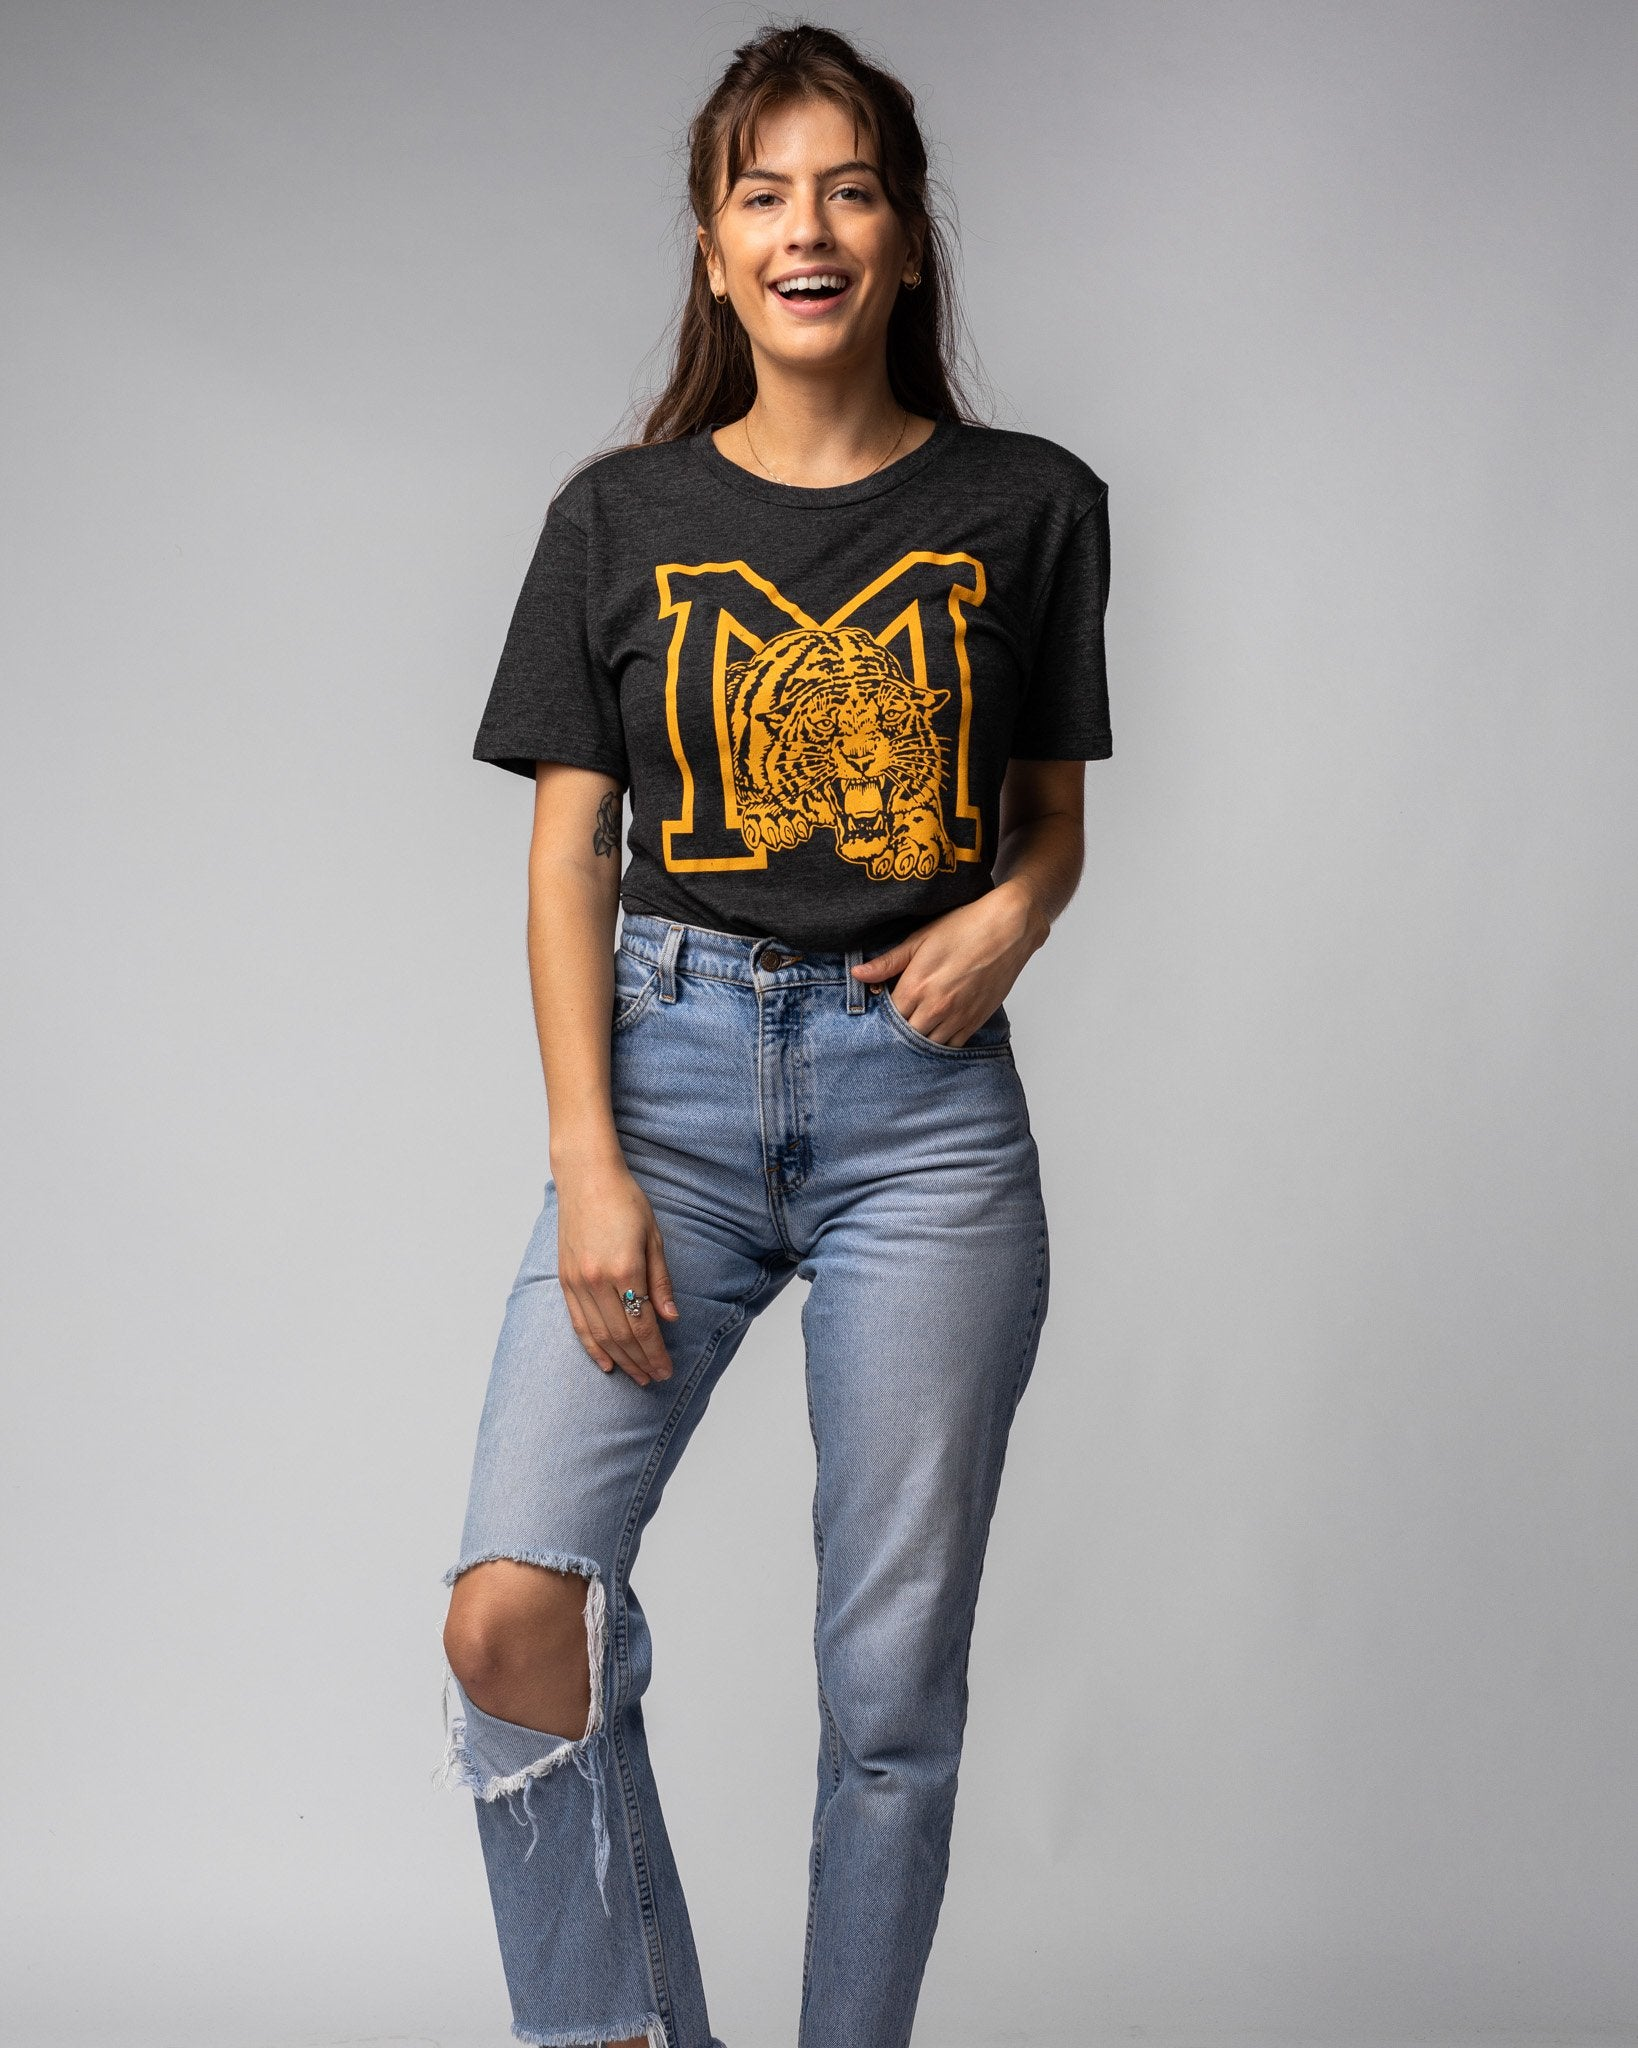 Black University of Missouri Tigers Monogram Vintage T-Shirt Wide